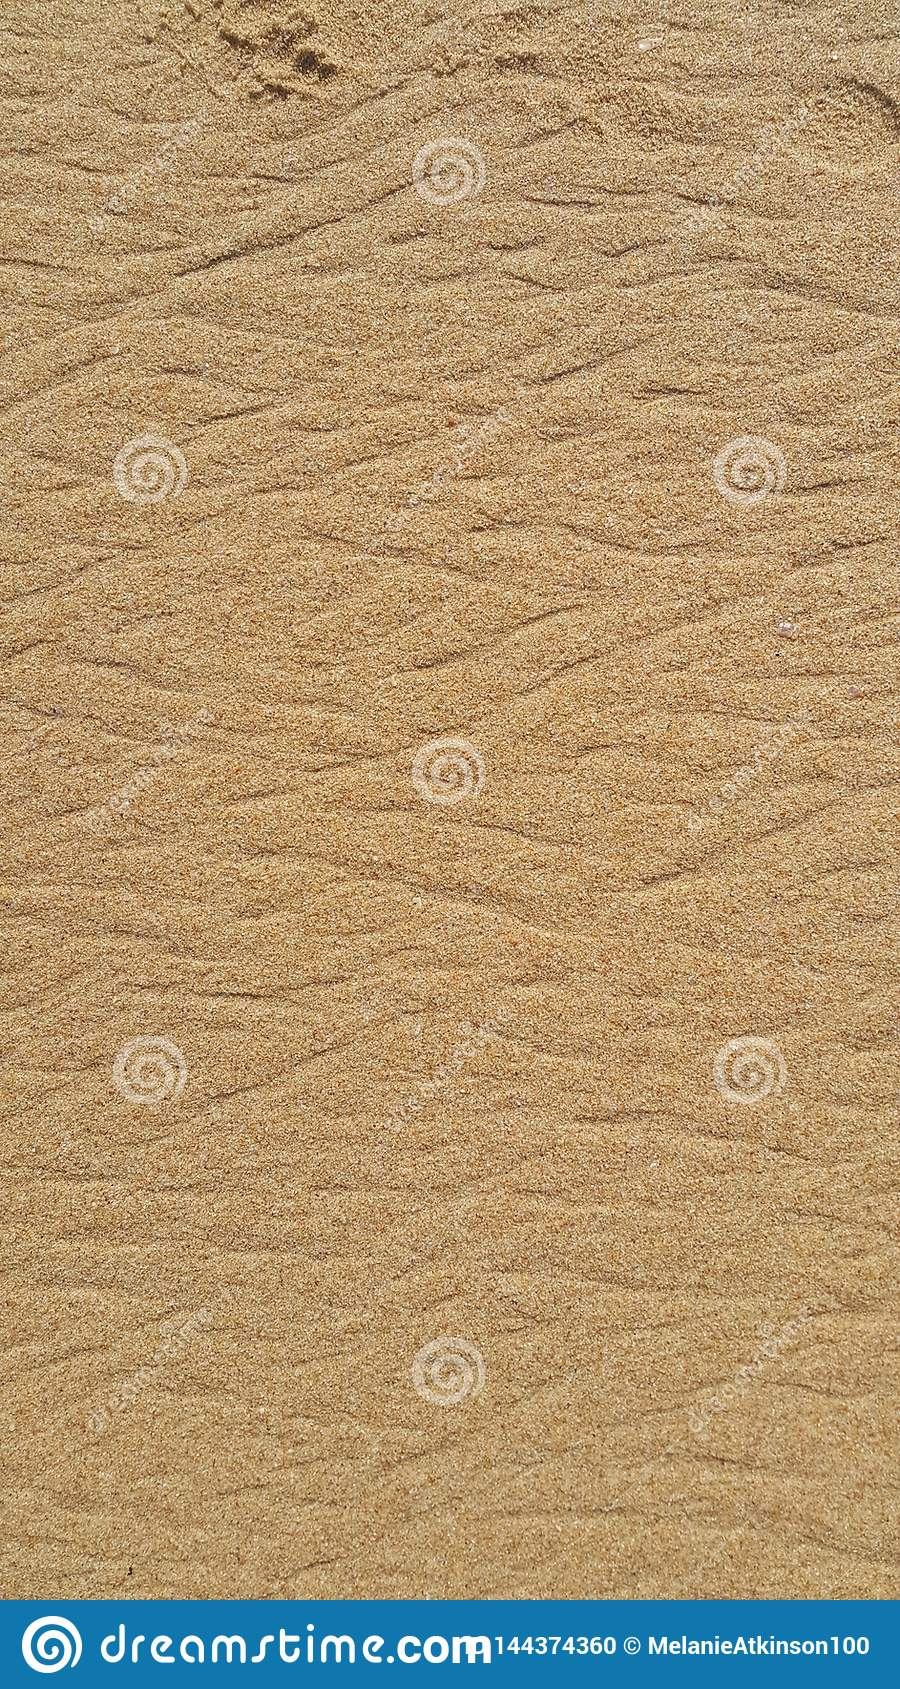 Ripples created on the beach sand as the tides move